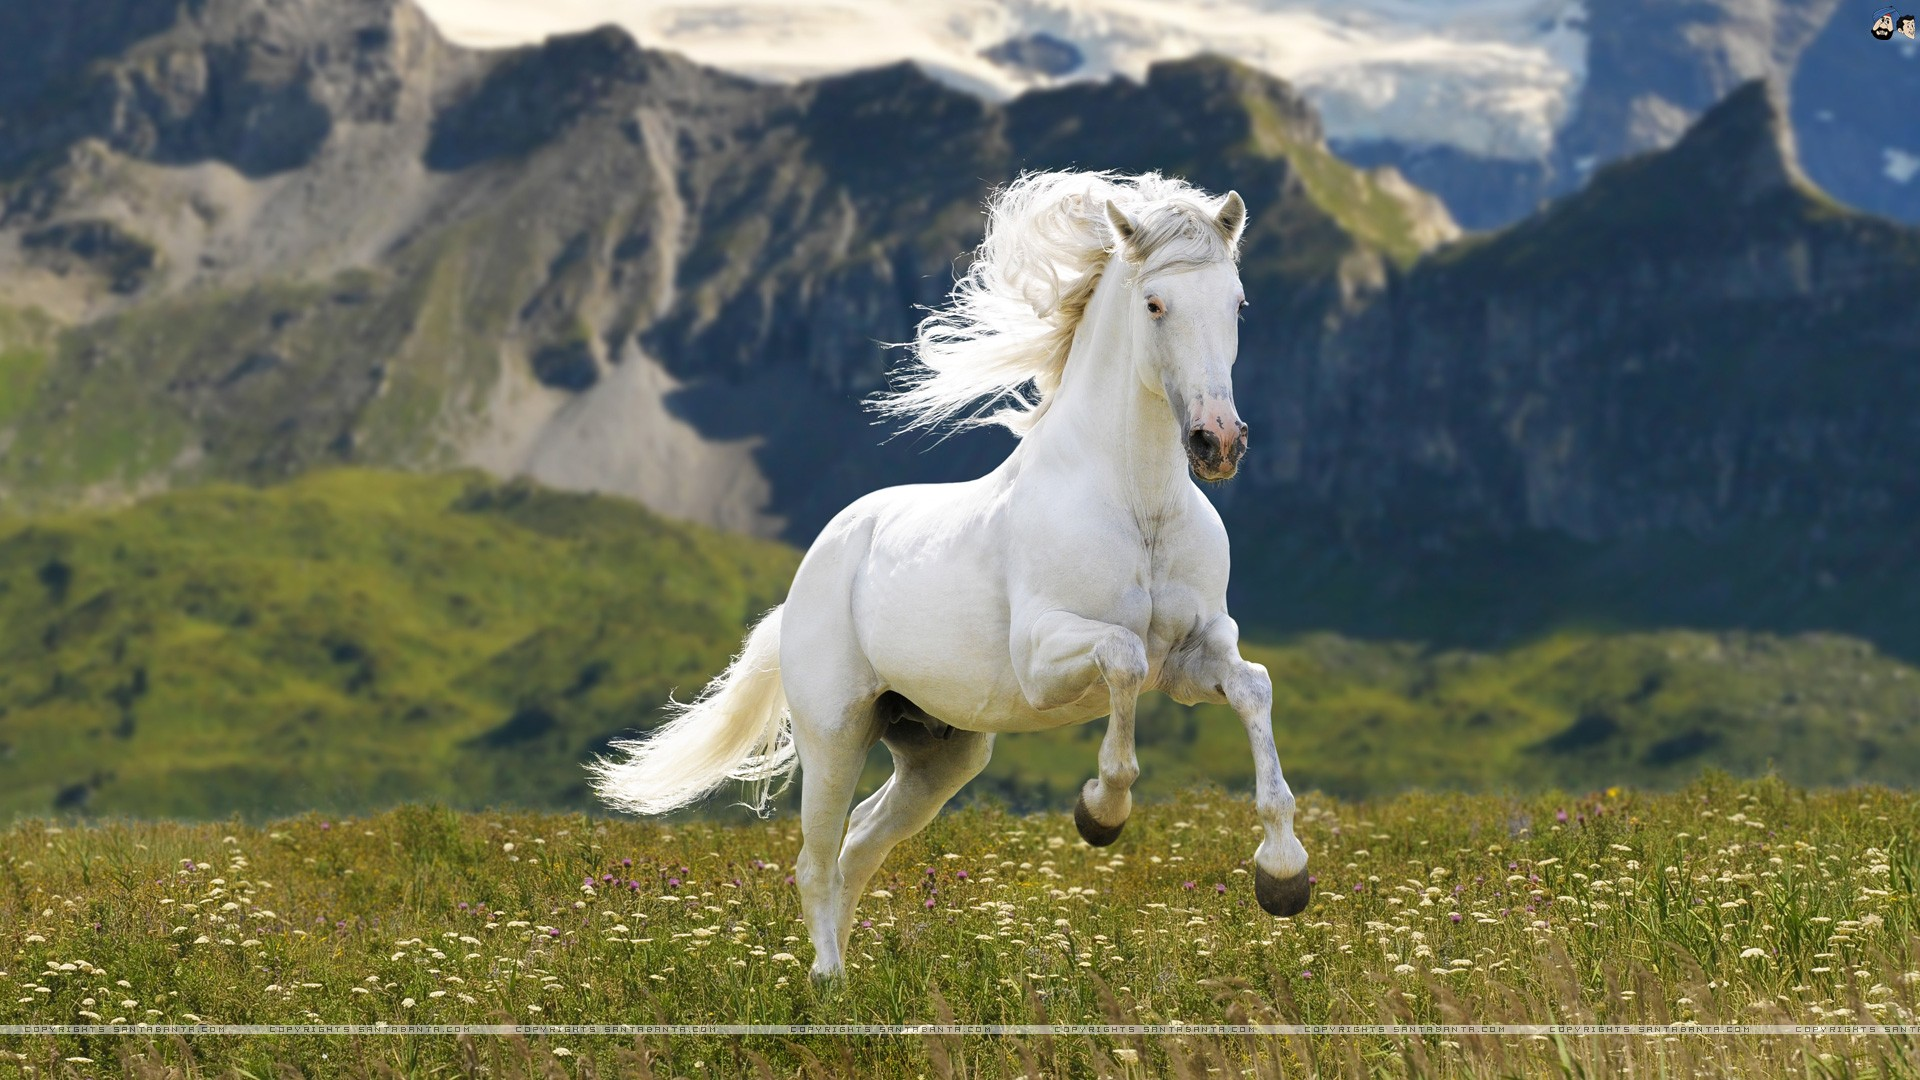 Backgrounds Horses - WallpaperPulse